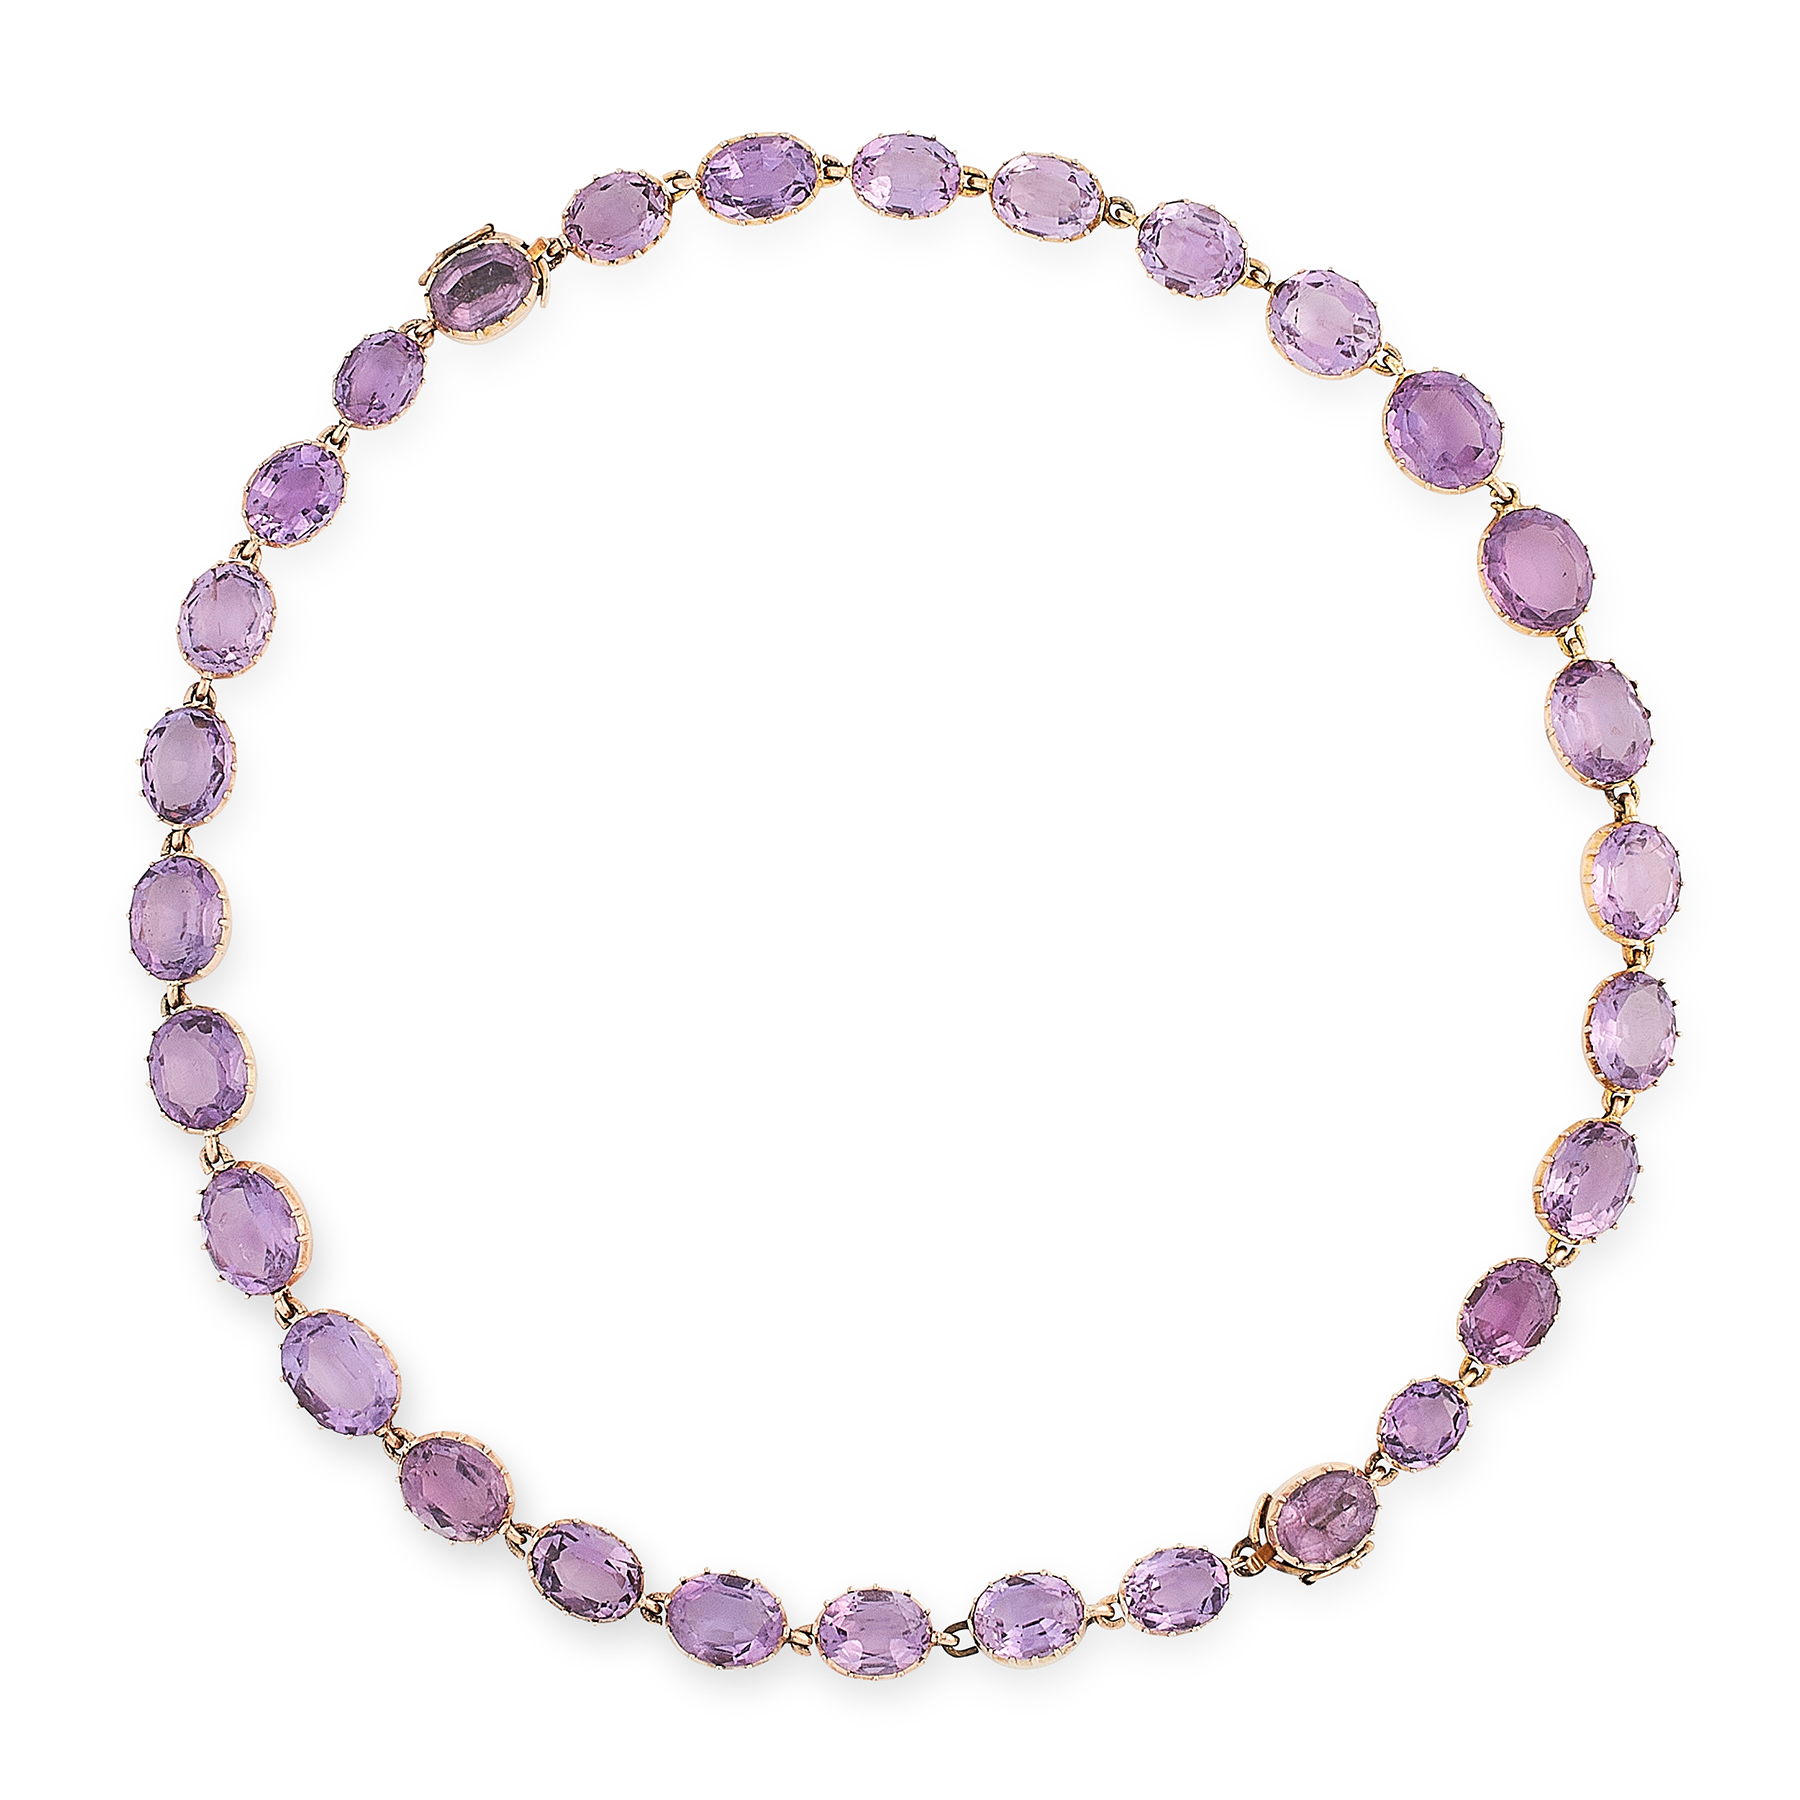 AN ANTIQUE AMETHYST RIVIERE NECKLACE, 19TH CENTURY in yellow gold, comprising a row of thirty oval